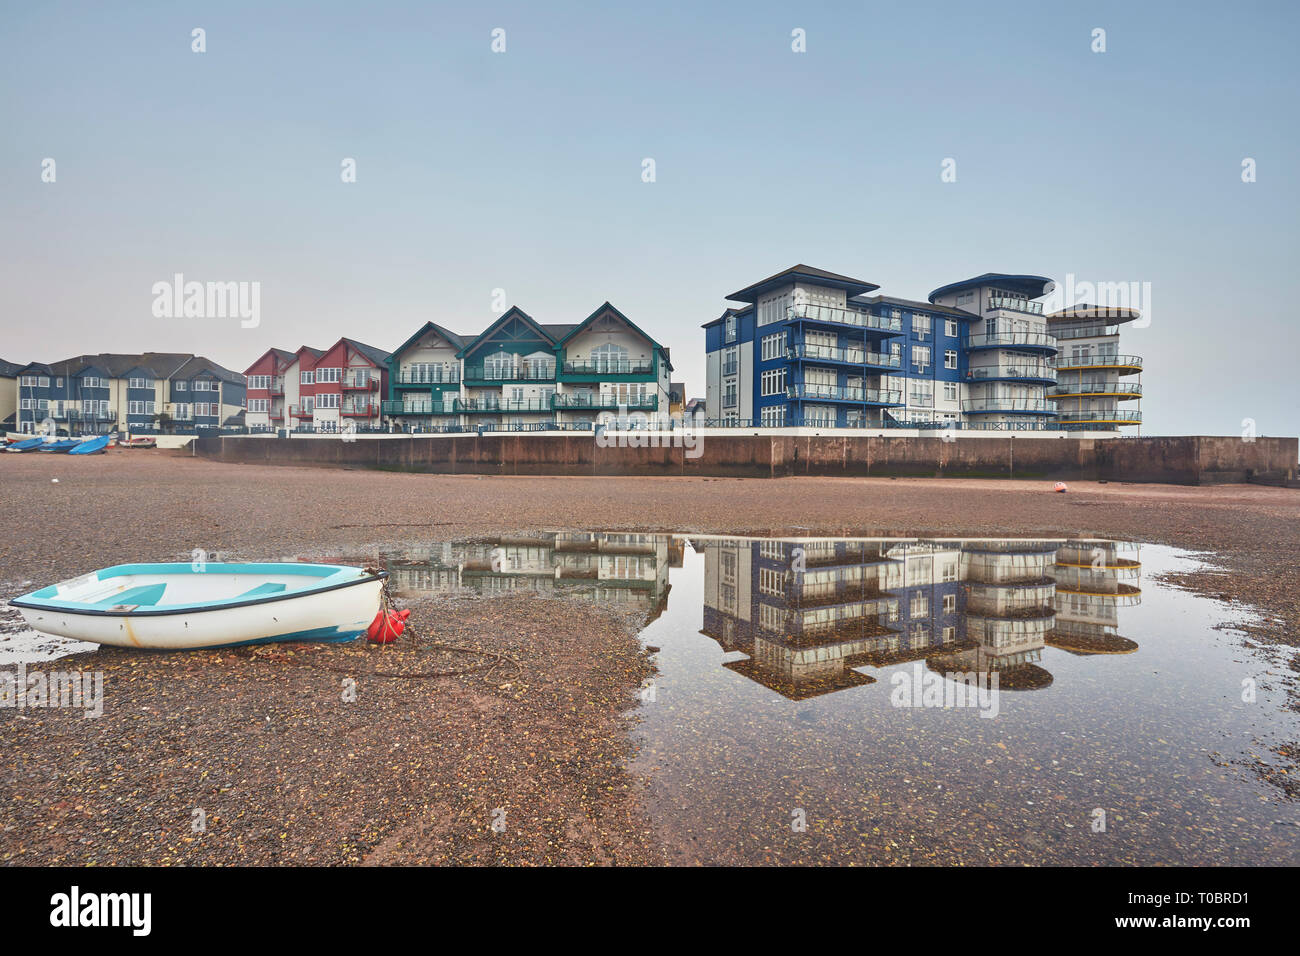 An evening view of the estuary of the River Exe at low tide, Exmouth, Devon, Great Britain. - Stock Image